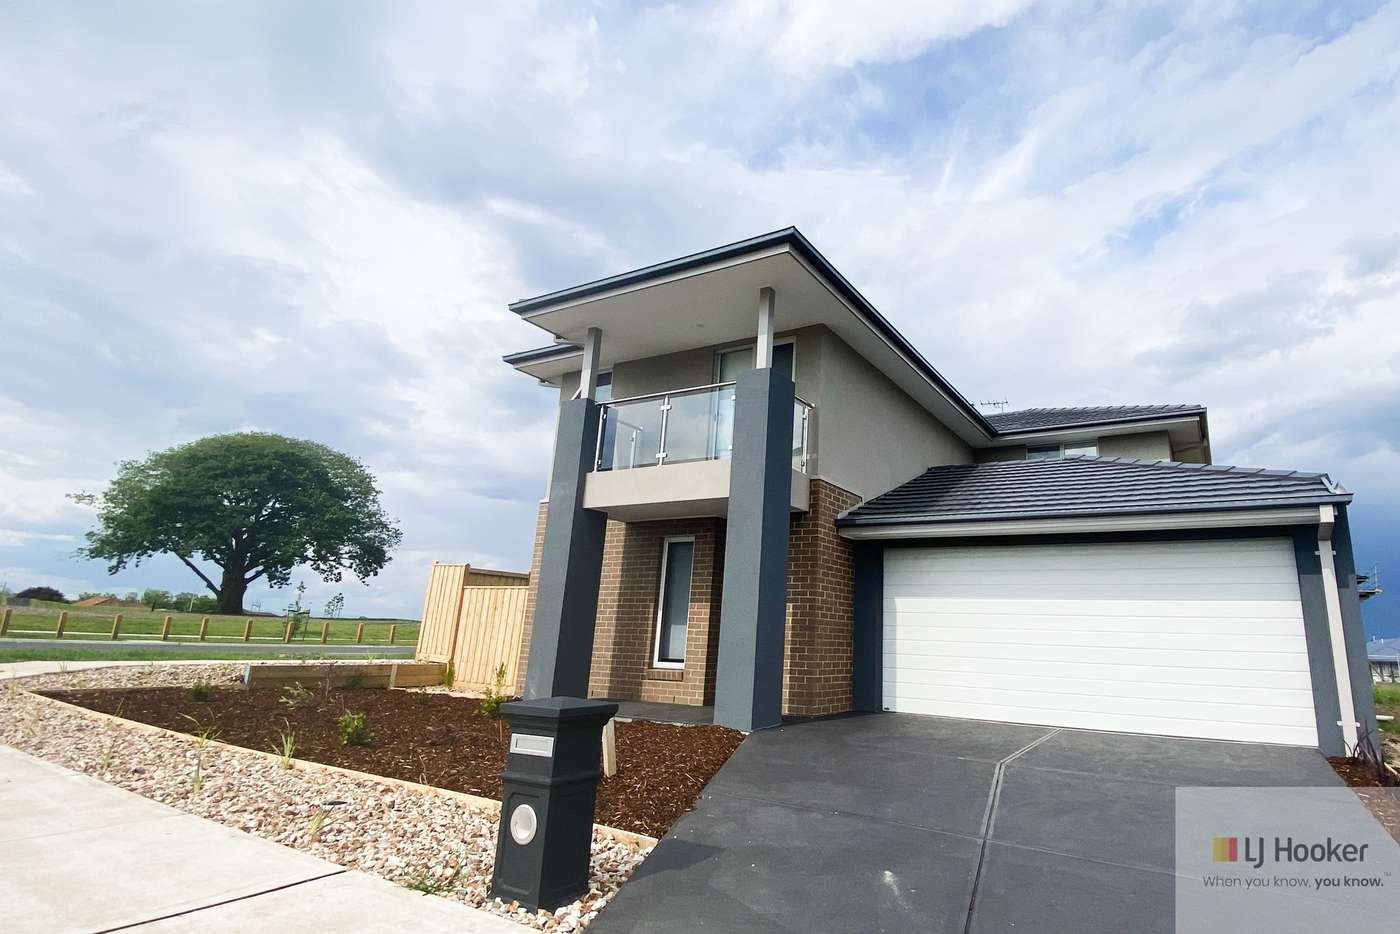 Main view of Homely house listing, 1 Redding Street, Cranbourne East VIC 3977